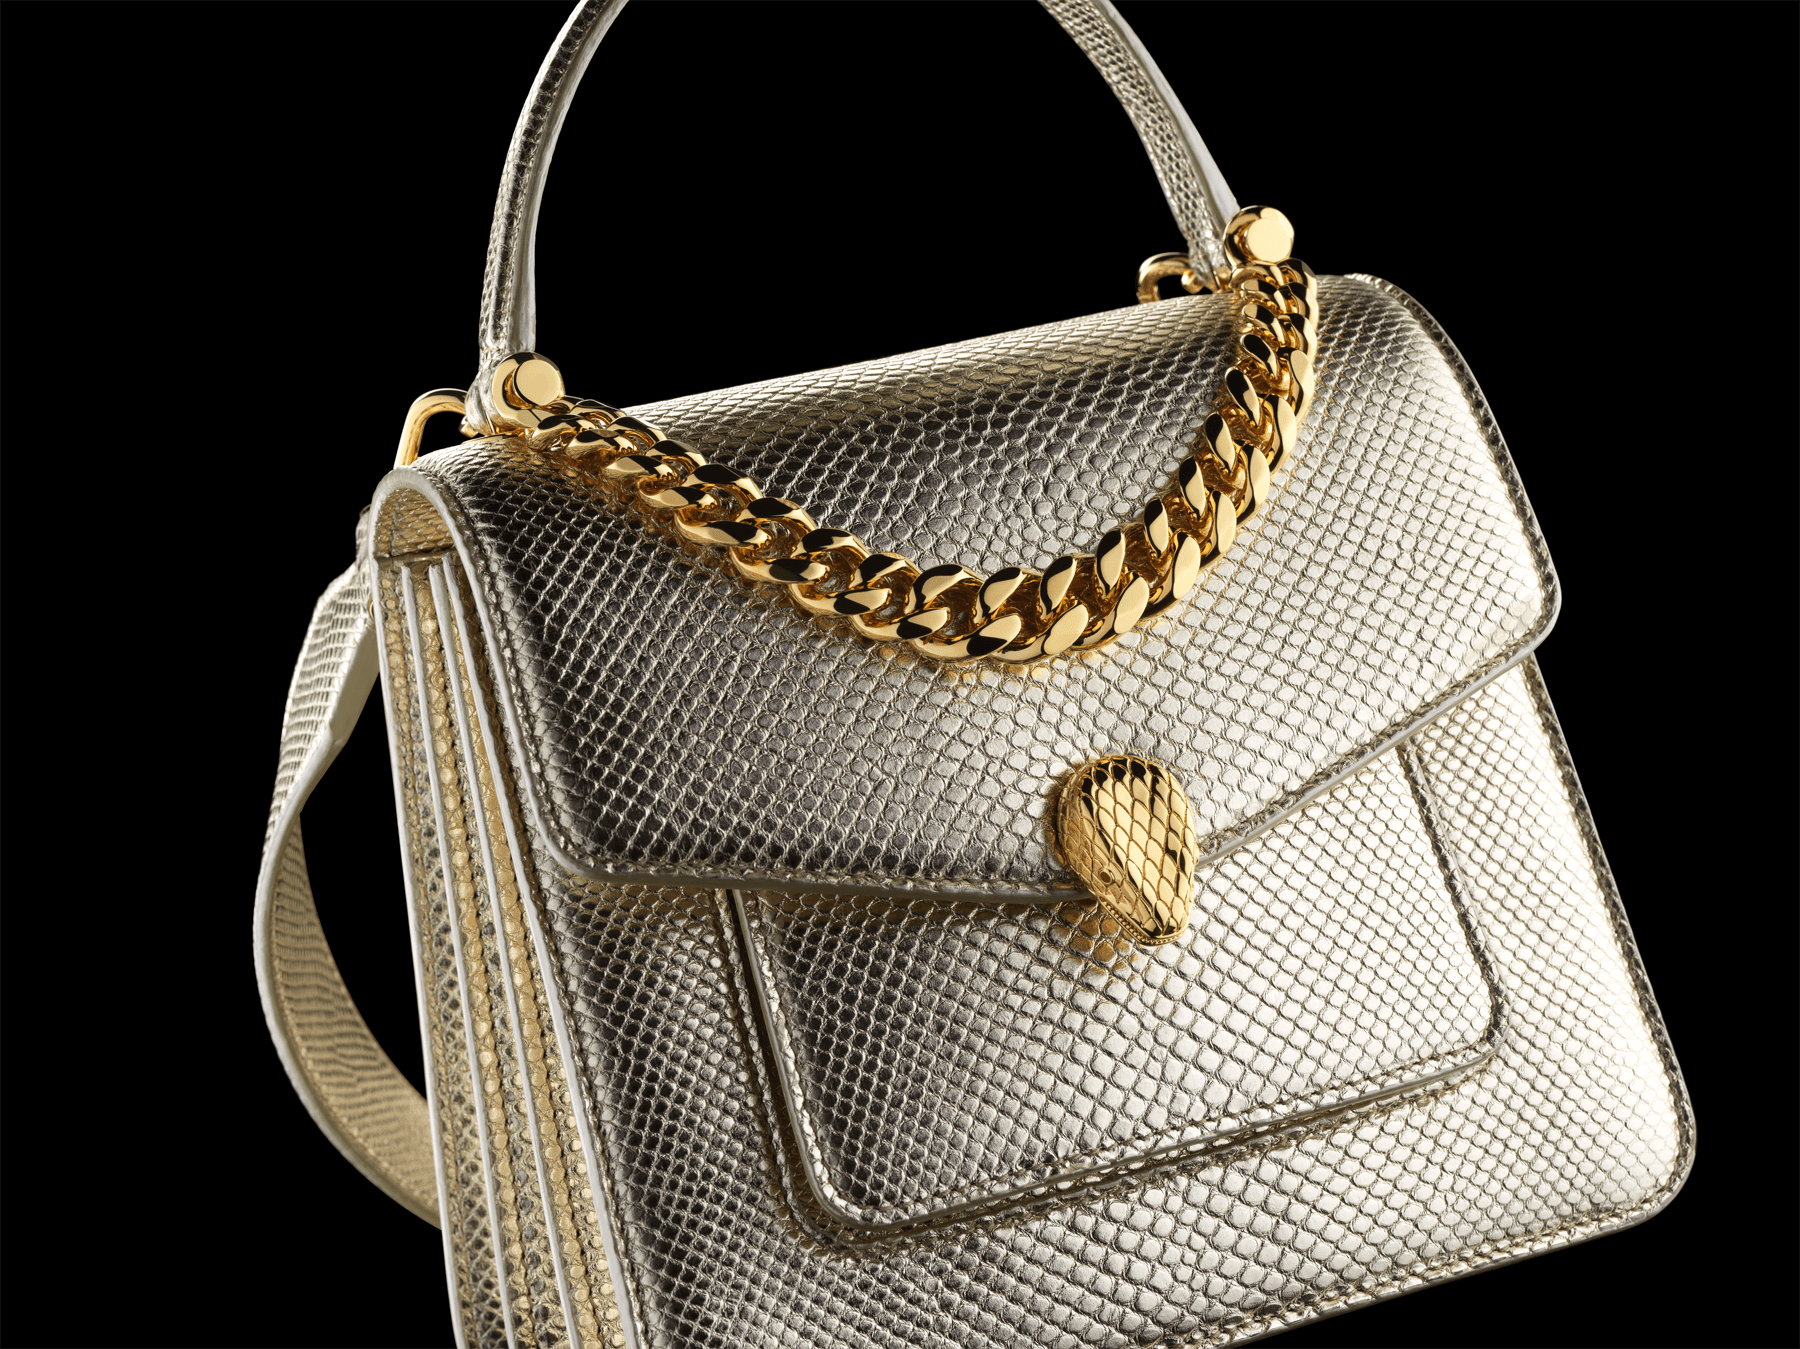 """Serpenti Forever"" small maxi chain top handle bag in peach nappa leather, with Lavander Amethyst lilac nappa leather internal lining. New Serpenti head closure in gold plated brass, finished with small pink mother-of-pearl scales in the middle and red enamel eyes. 1133-MCN image 5"